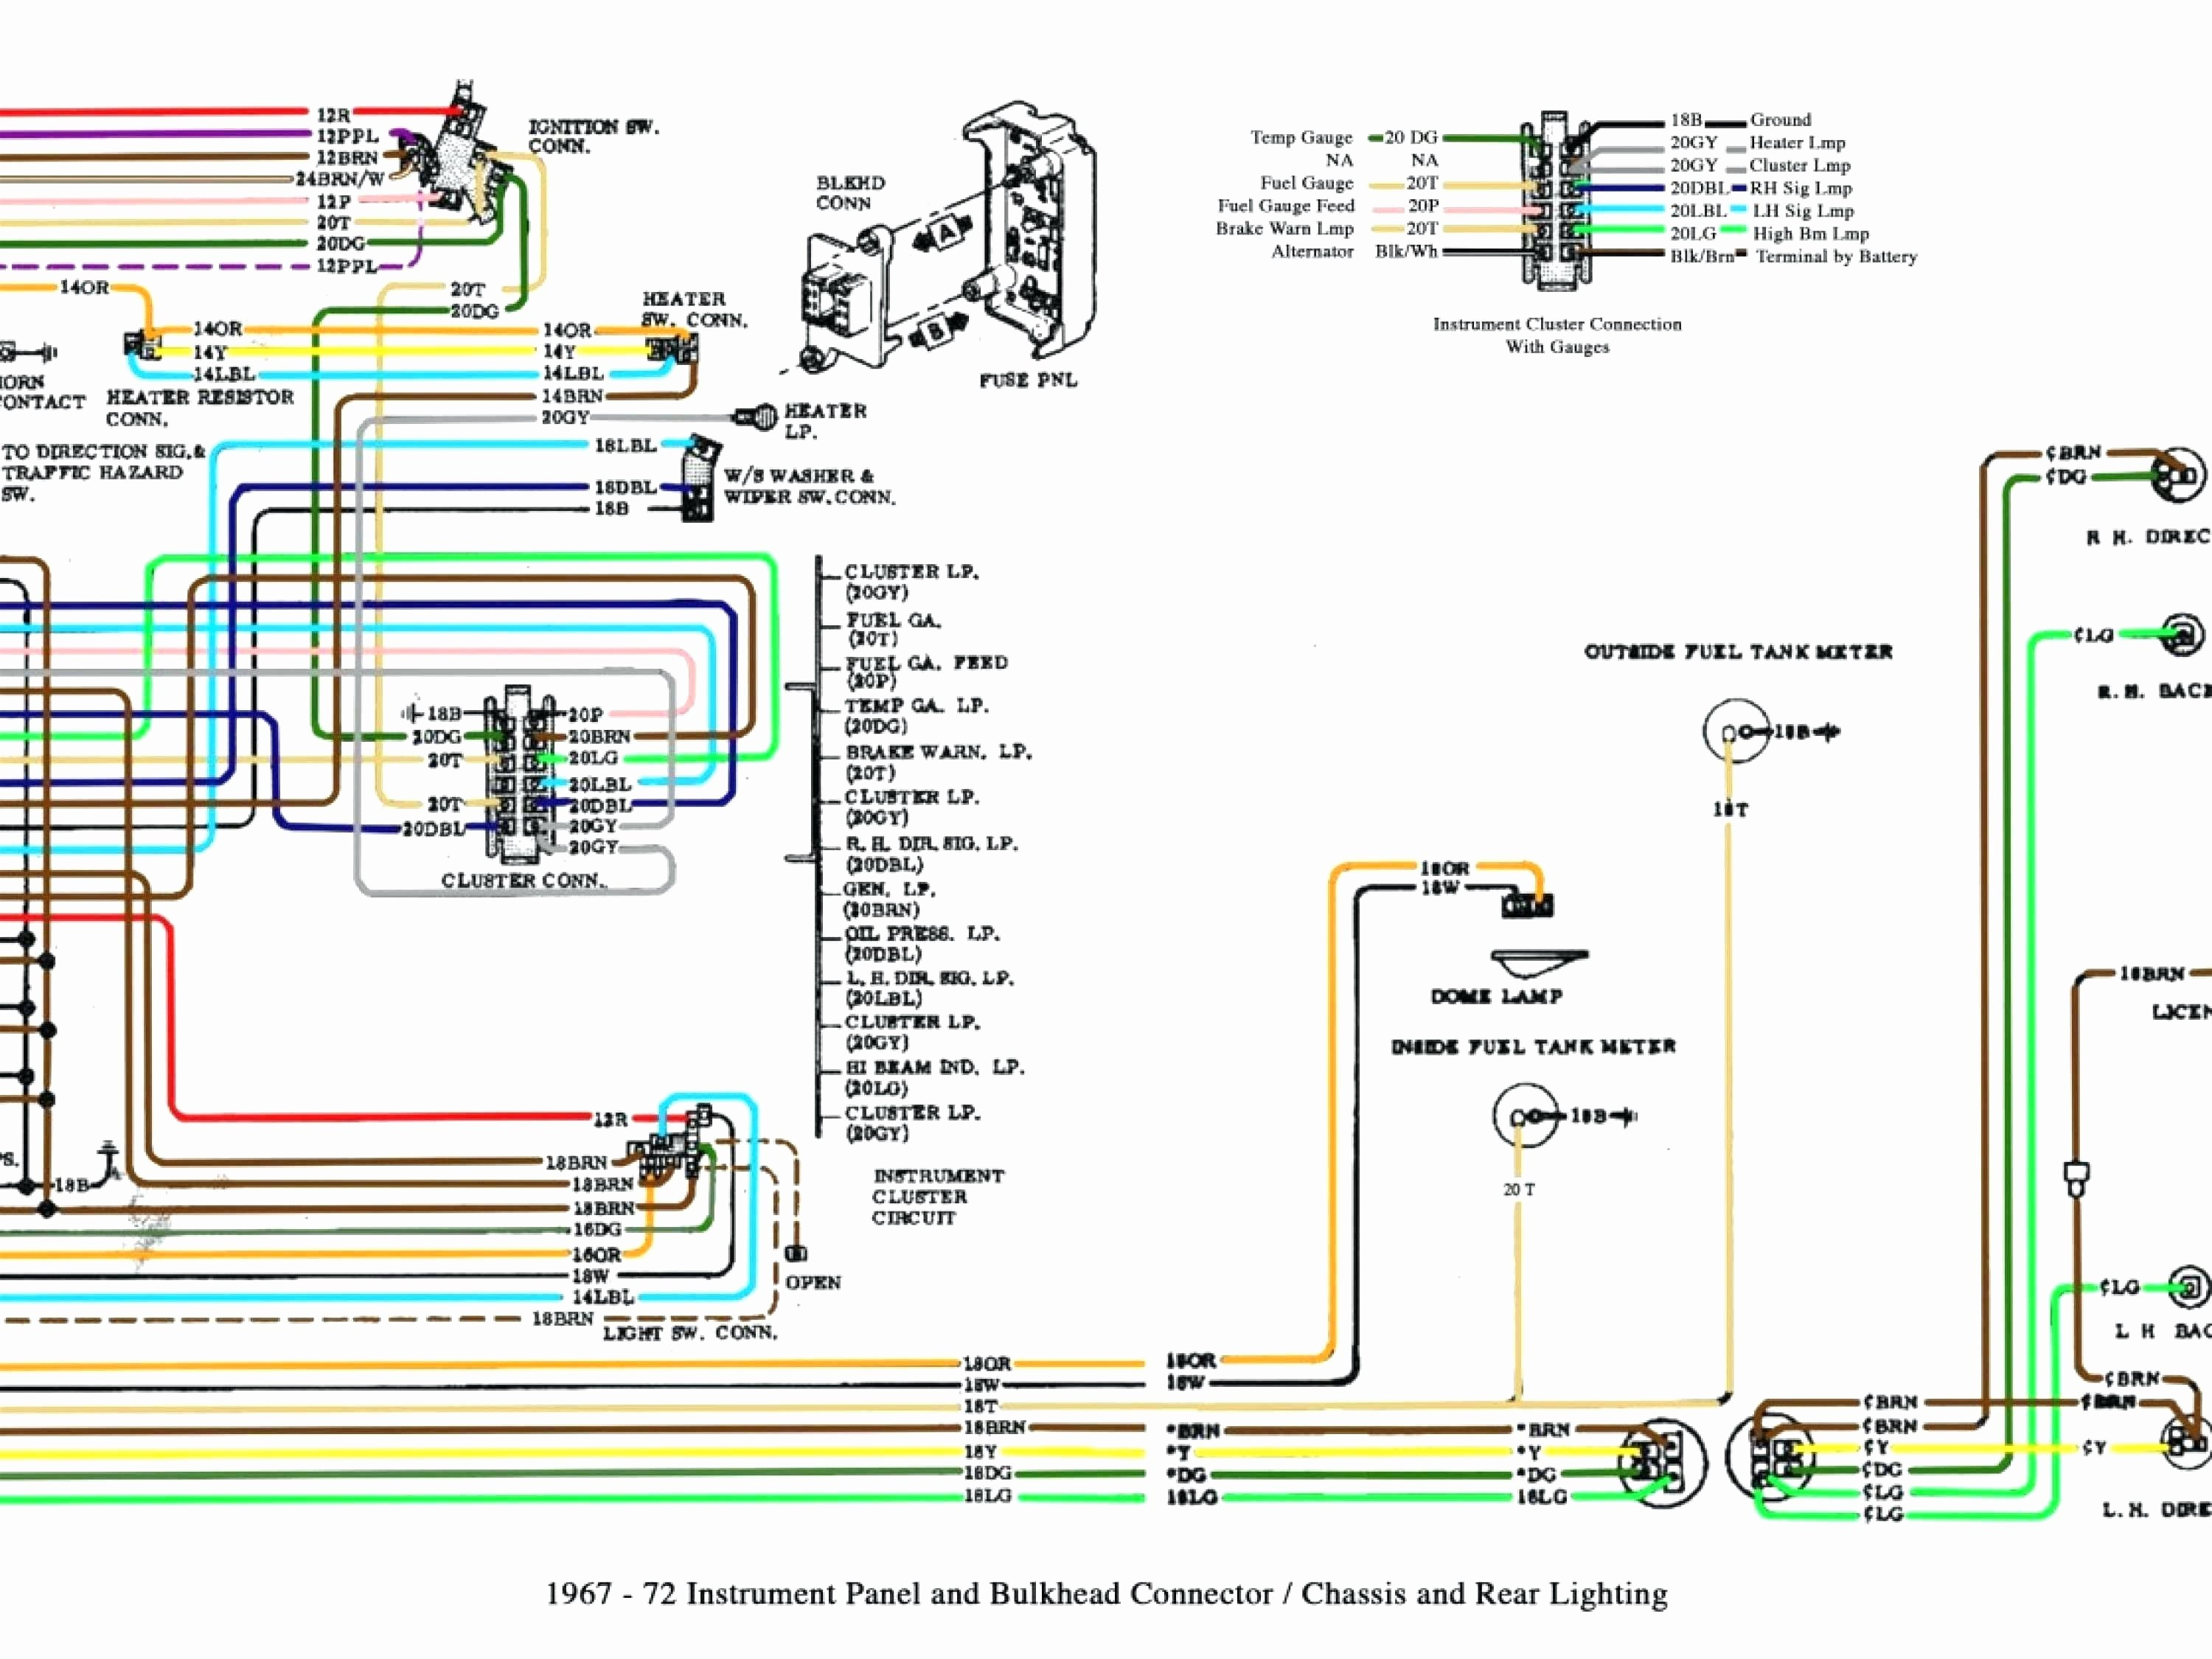 91 chevy k1500 wiring harness - wiring diagram time-ware -  time-ware.cinemamanzonicasarano.it  cinemamanzonicasarano.it